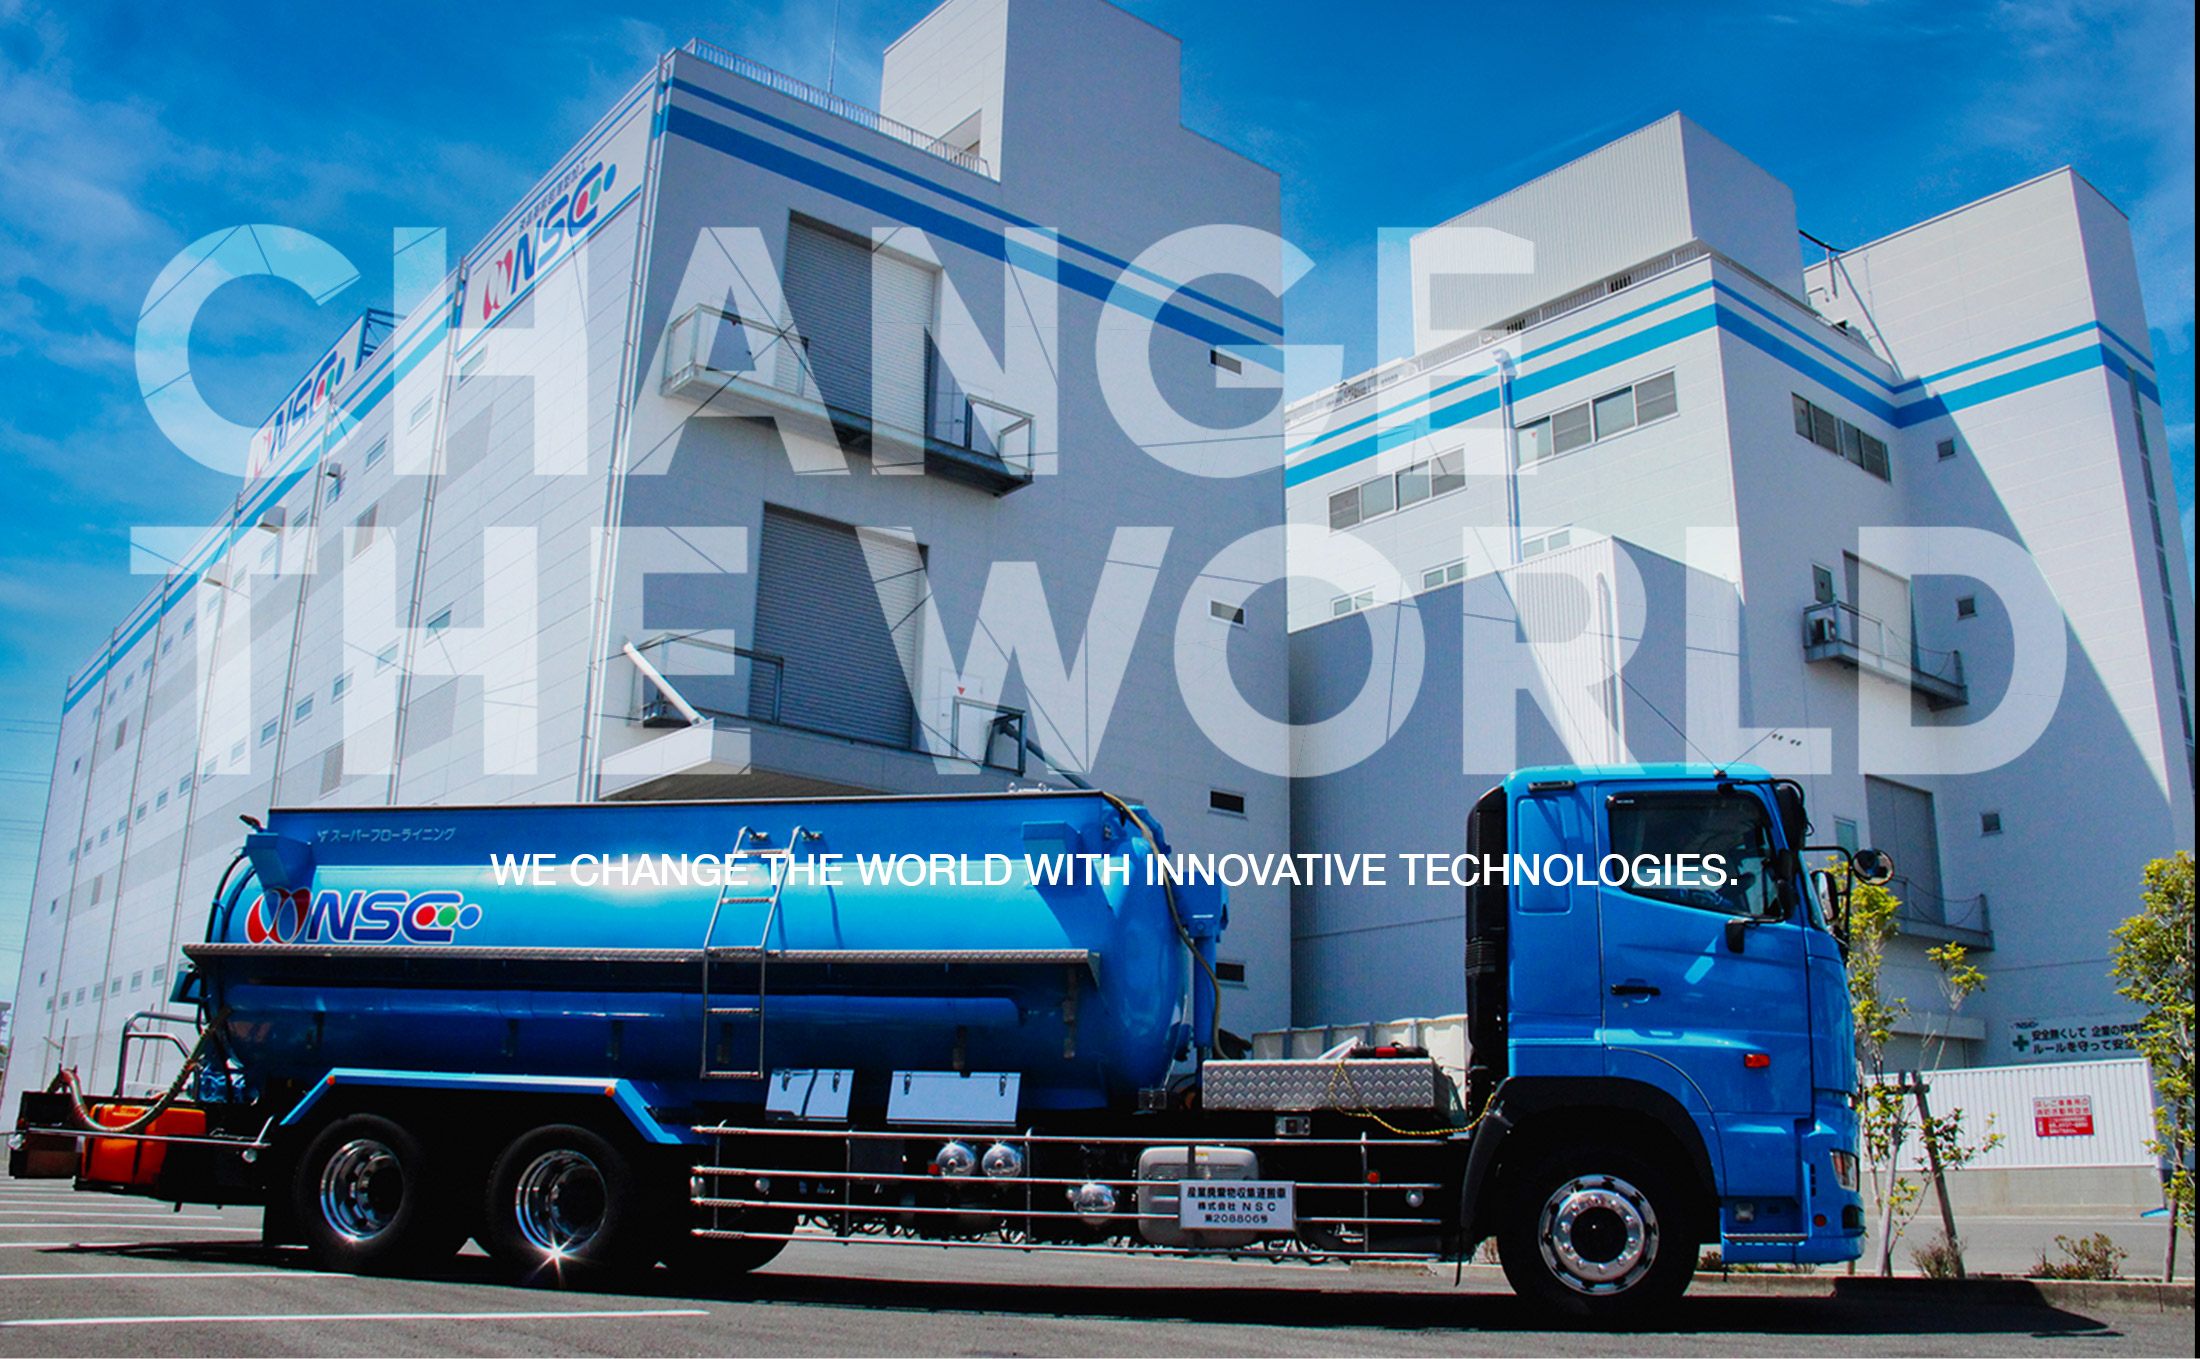 We change the world with innovative technologies.